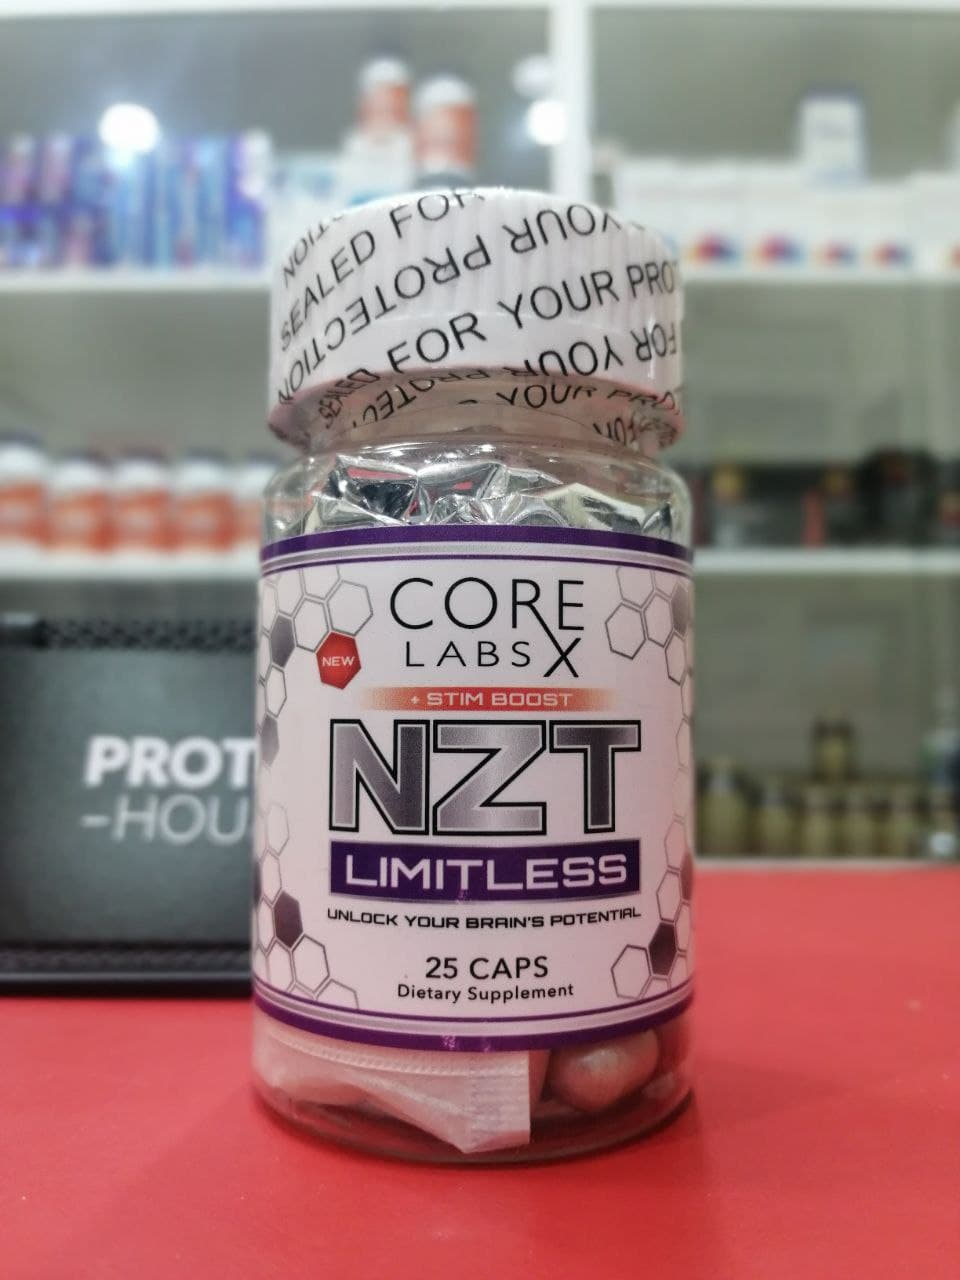 Core Labs NZT Limitless